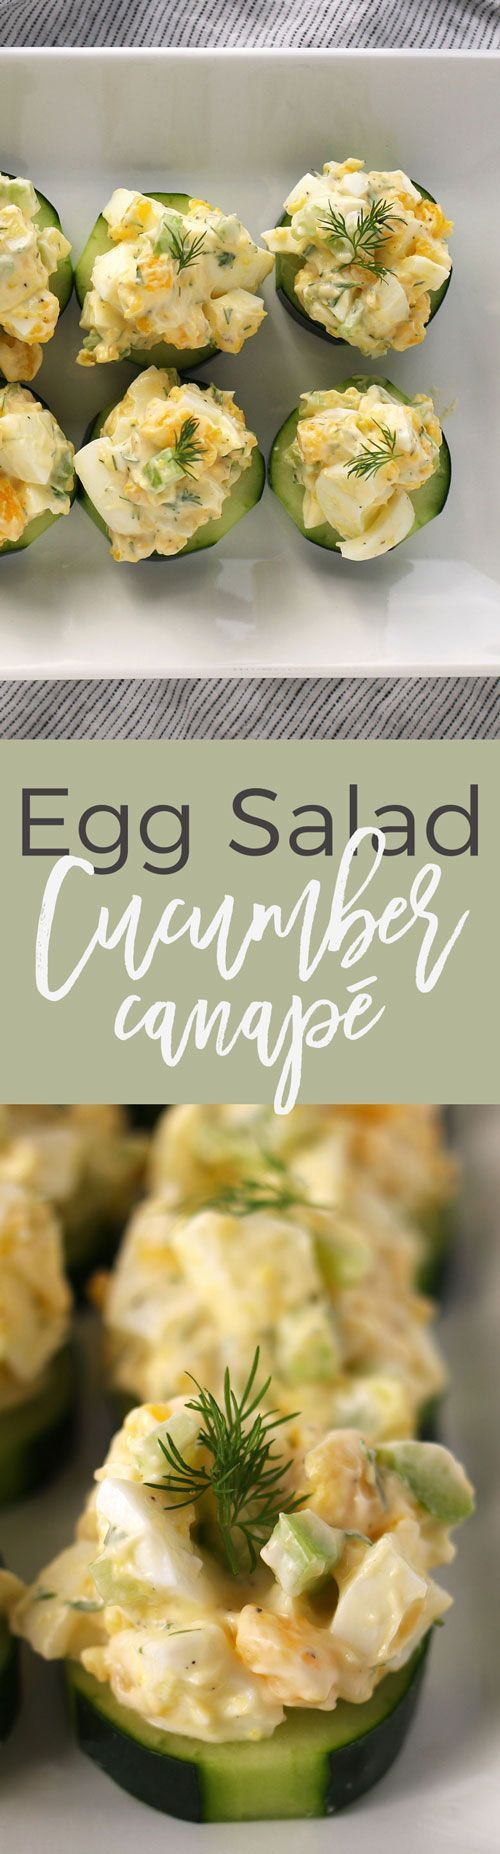 This egg salad cucumber canapé recipe is perfect appetizer for Easter and Mother's Day brunches. It is gluten-free and dairy-free and can be made in just 10 minutes. | honeyandbirch.com | finger food | brunch | lunch | refreshing | vegetarian | party | easy | healthy | recipes | bites | ideas | make ahead | summer | cold | recipe | ideas | frios | fancy